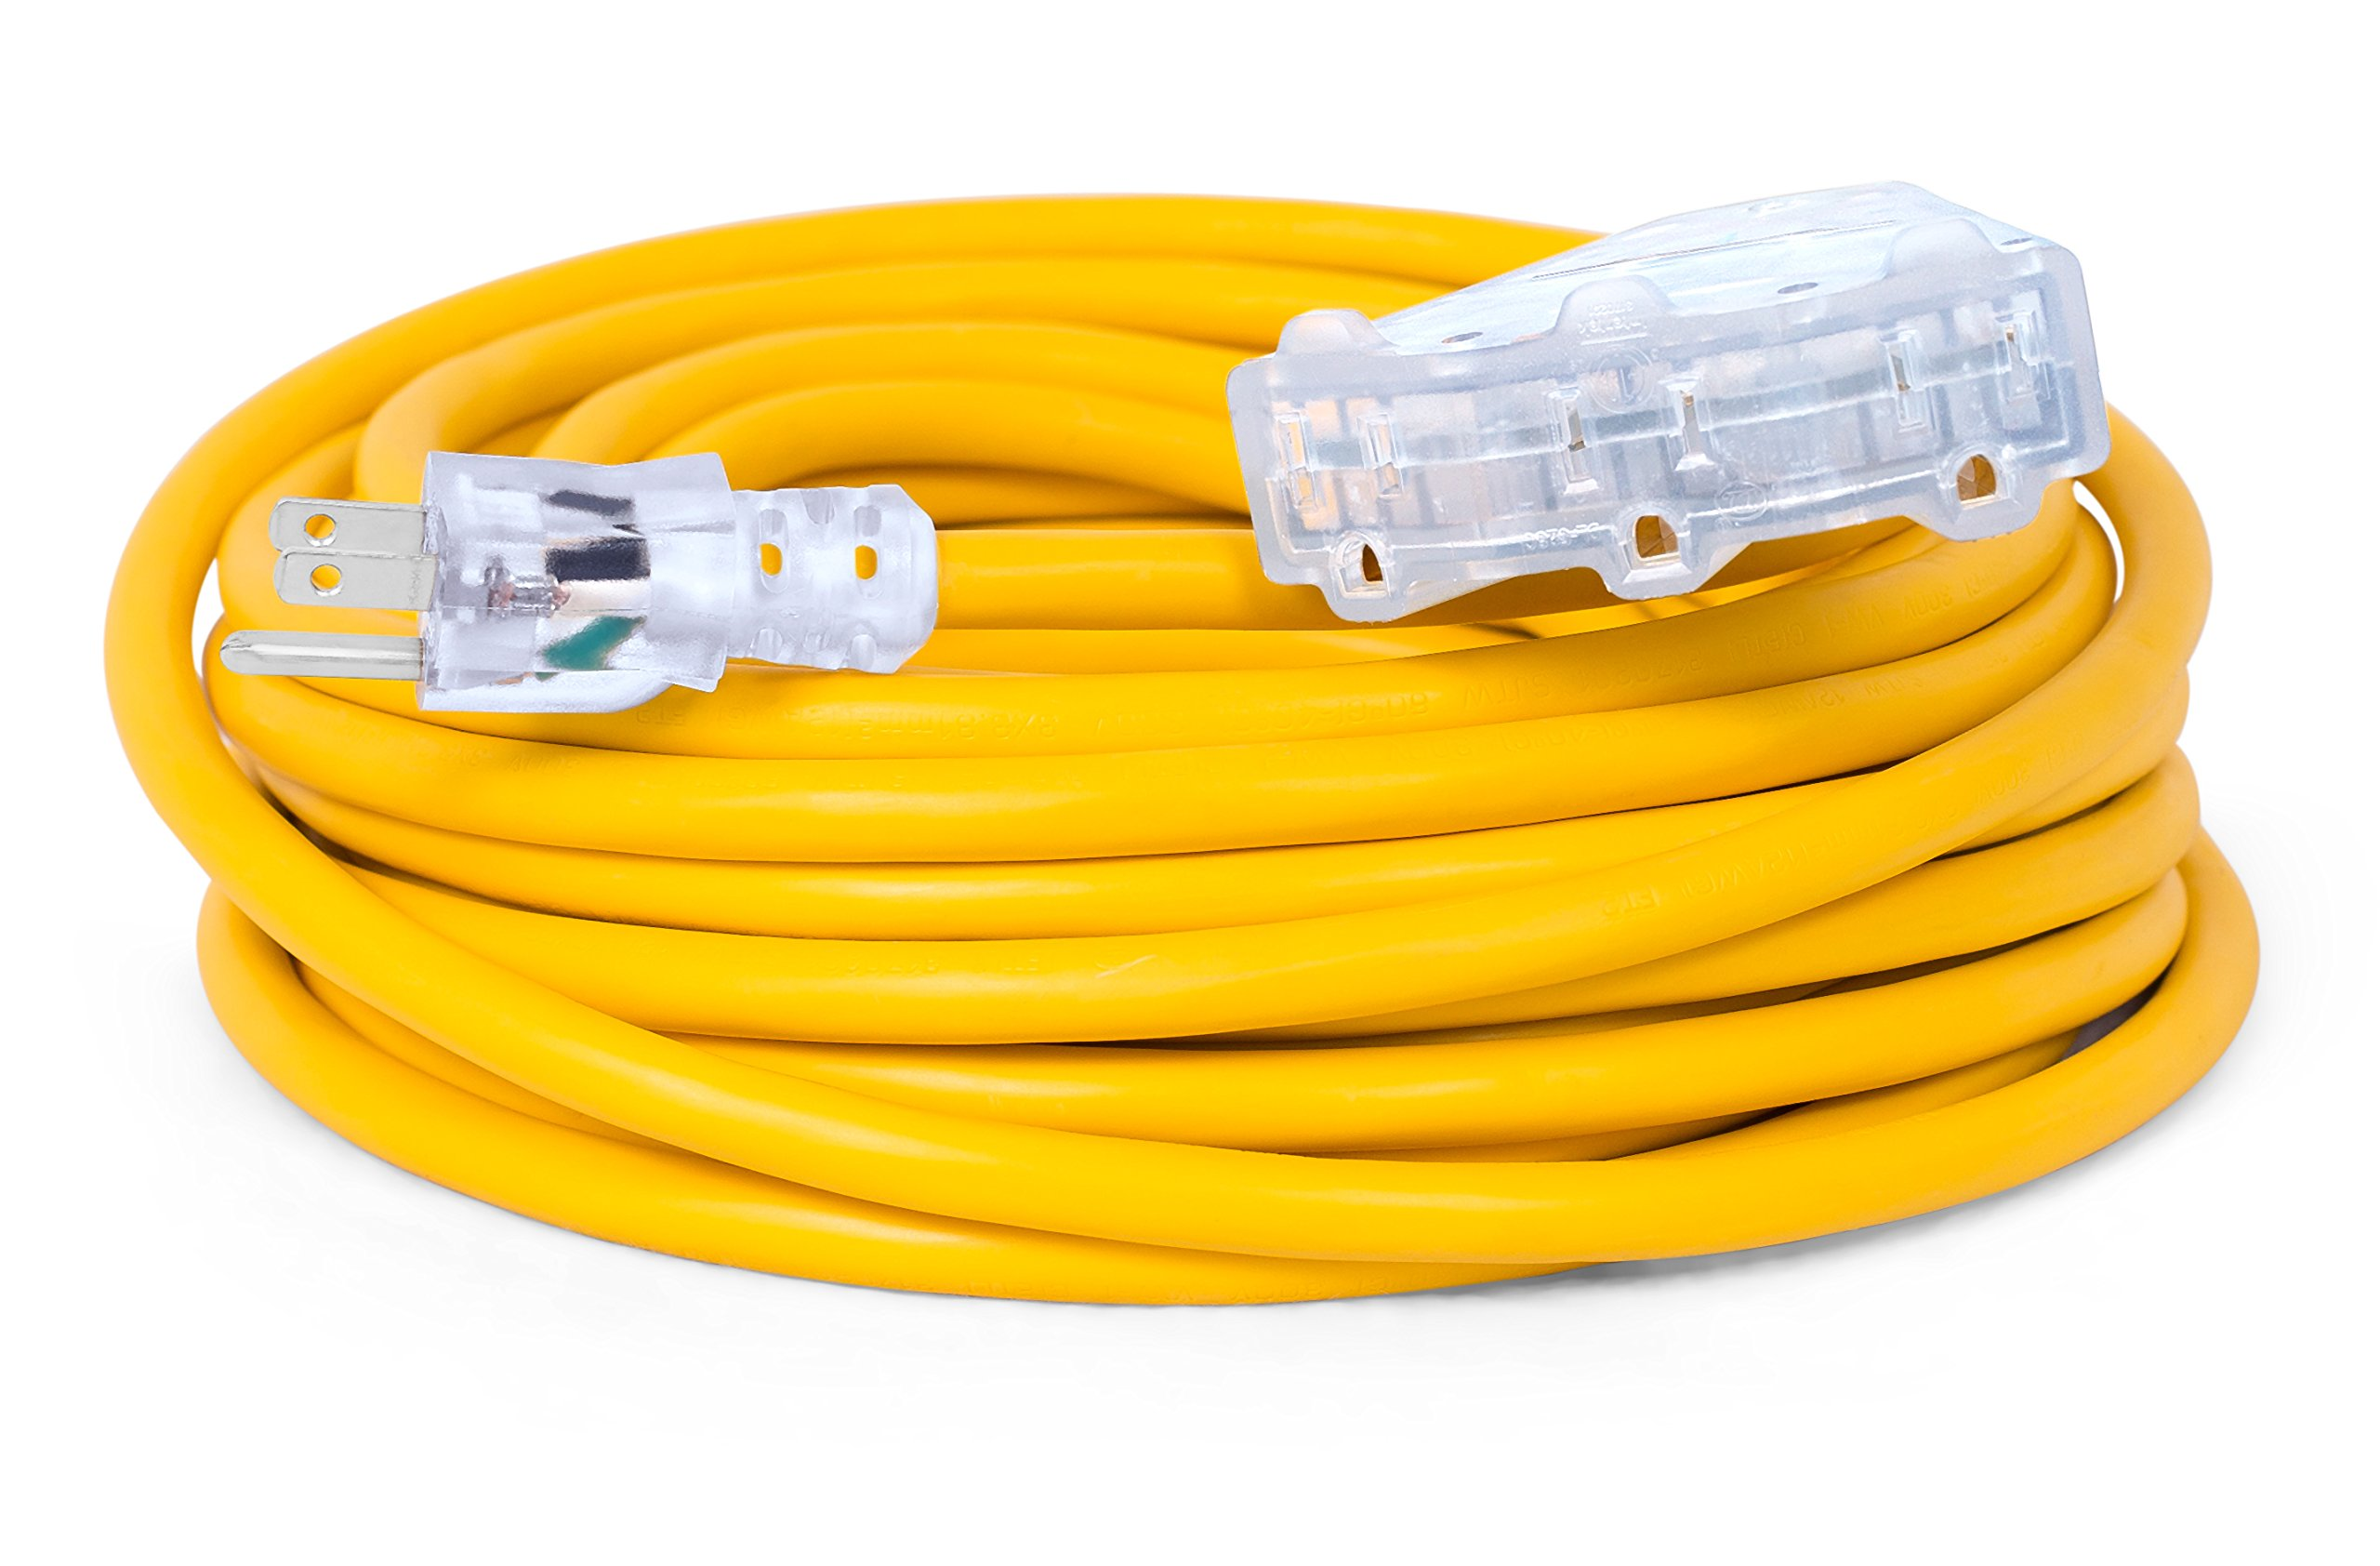 Internet's Best 50 FT Triple Tap Extension Cord with LED Lighted Plugs | 12 AWG (Gauge – 12/3) Heavy Duty Outdoor/Indoor Power Extension Cable Cord | NEMA 5-15R & 5-15P | 3 Outlet | Yellow